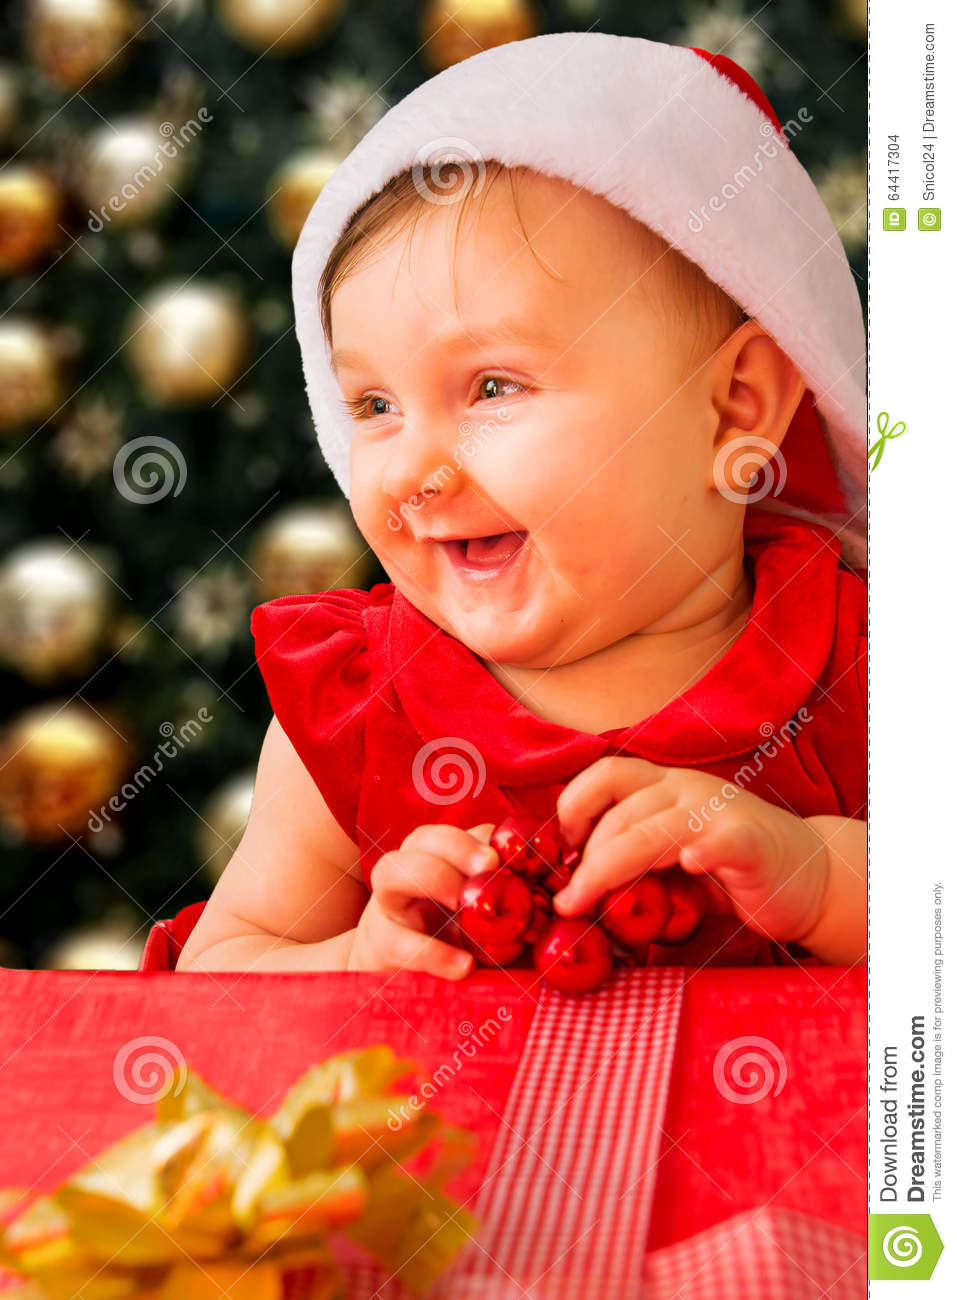 d7a254caf Christmas baby girl stock photo. Image of look